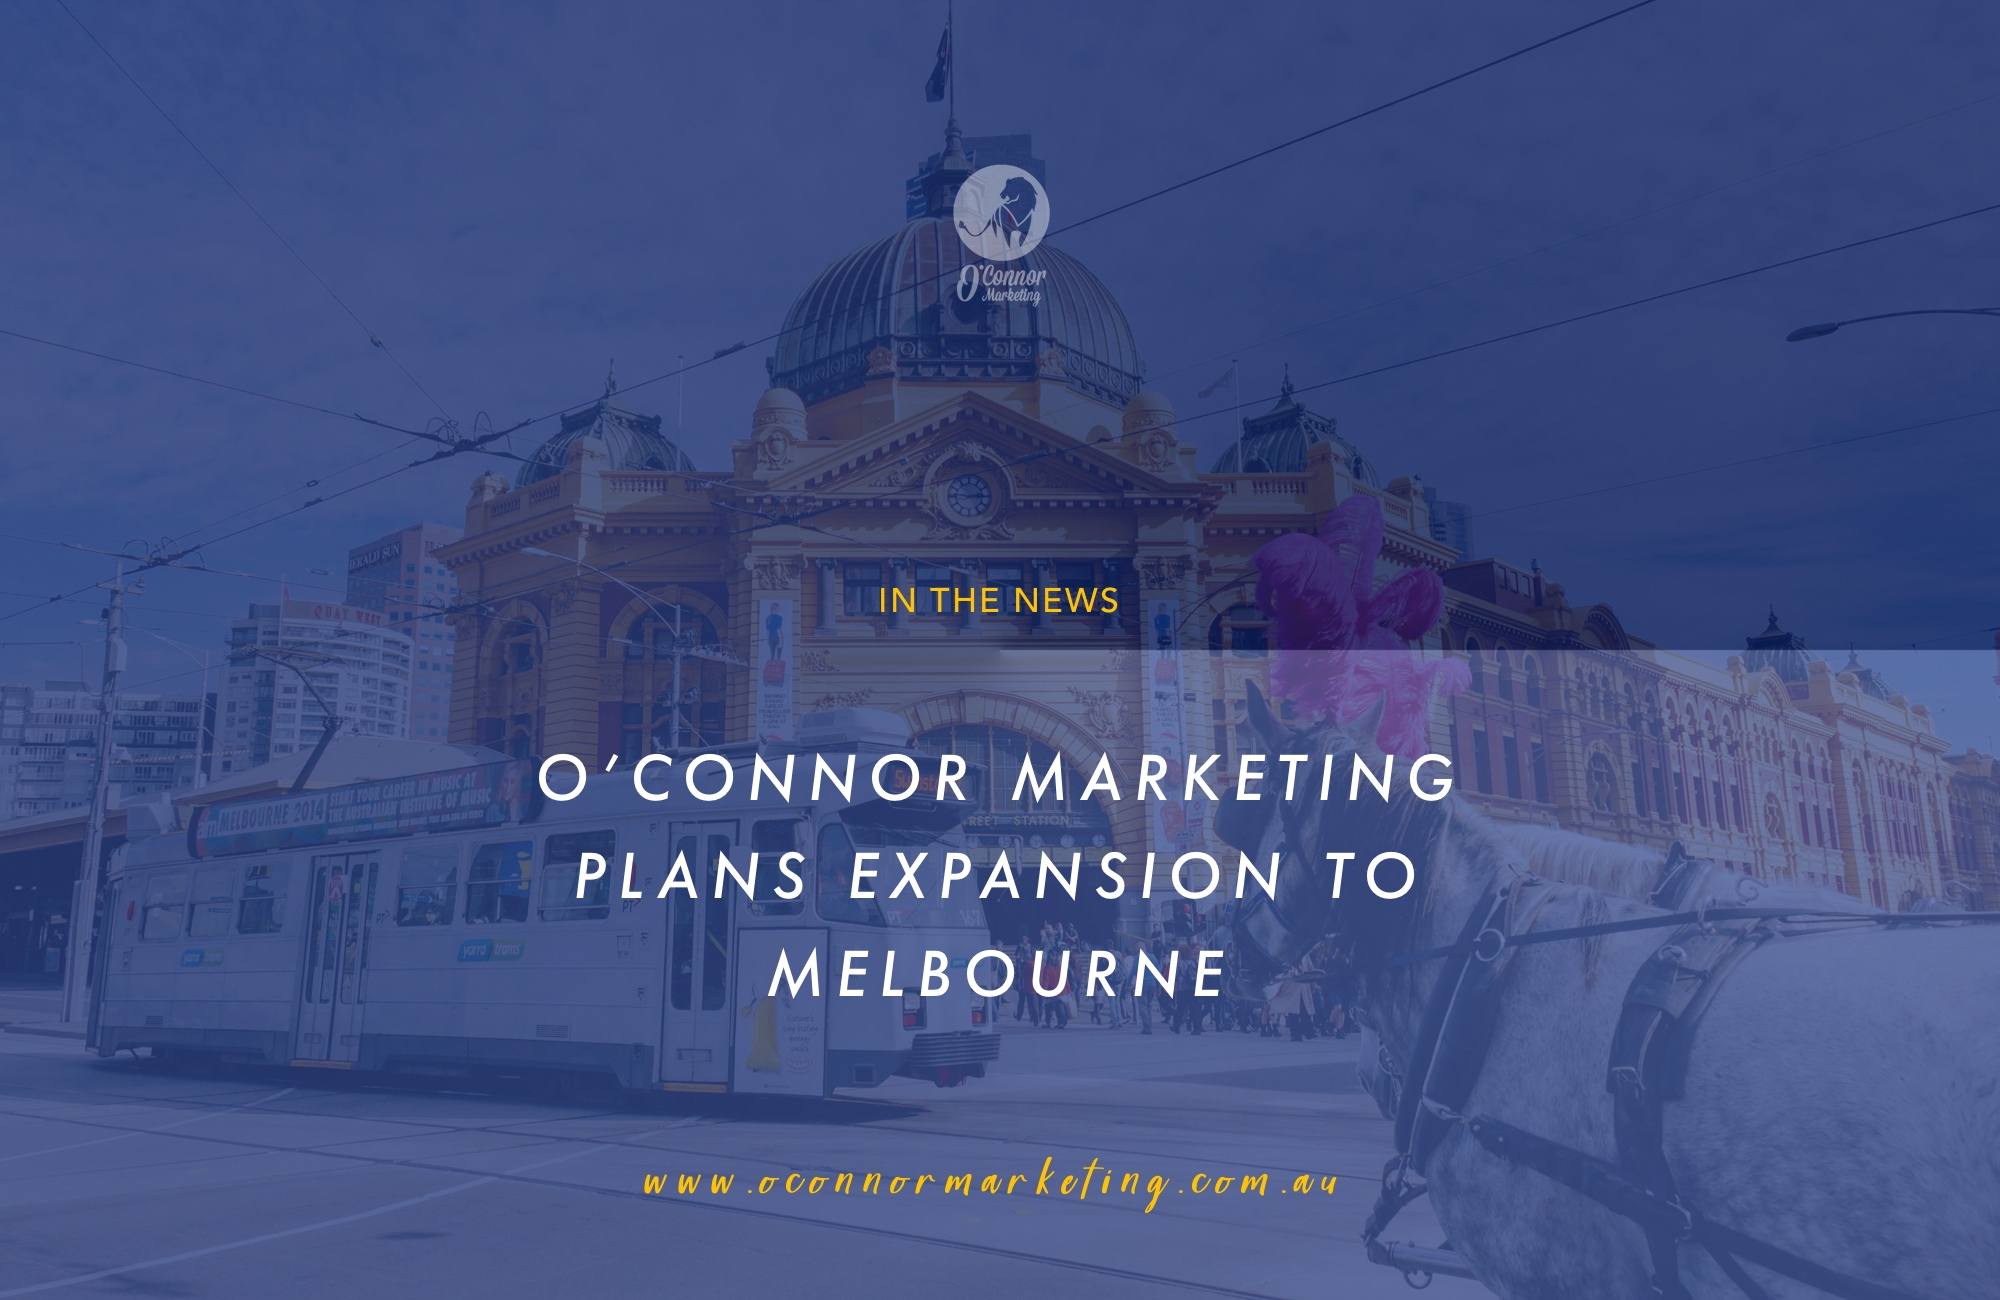 O'Connor Marketing plans expansion to Melbourne